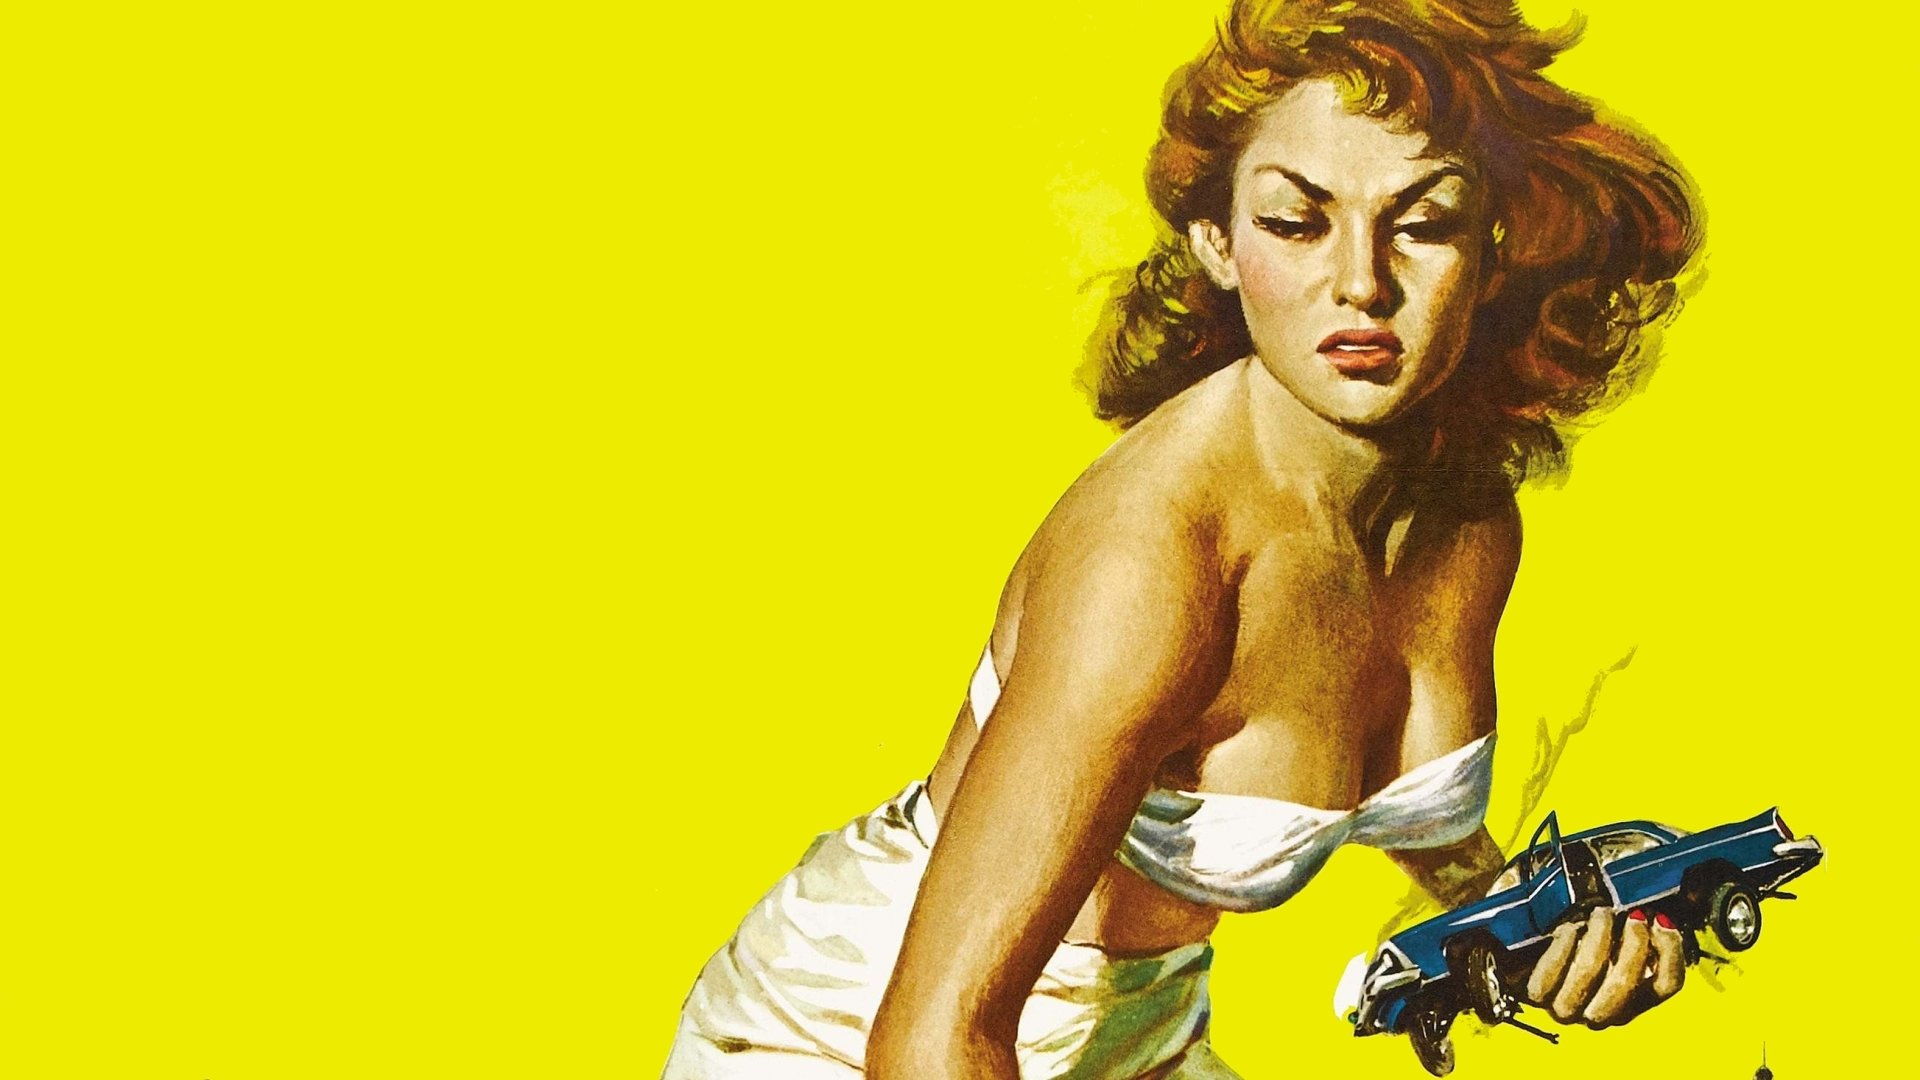 attack of the 50 foot woman full hd wallpaper and